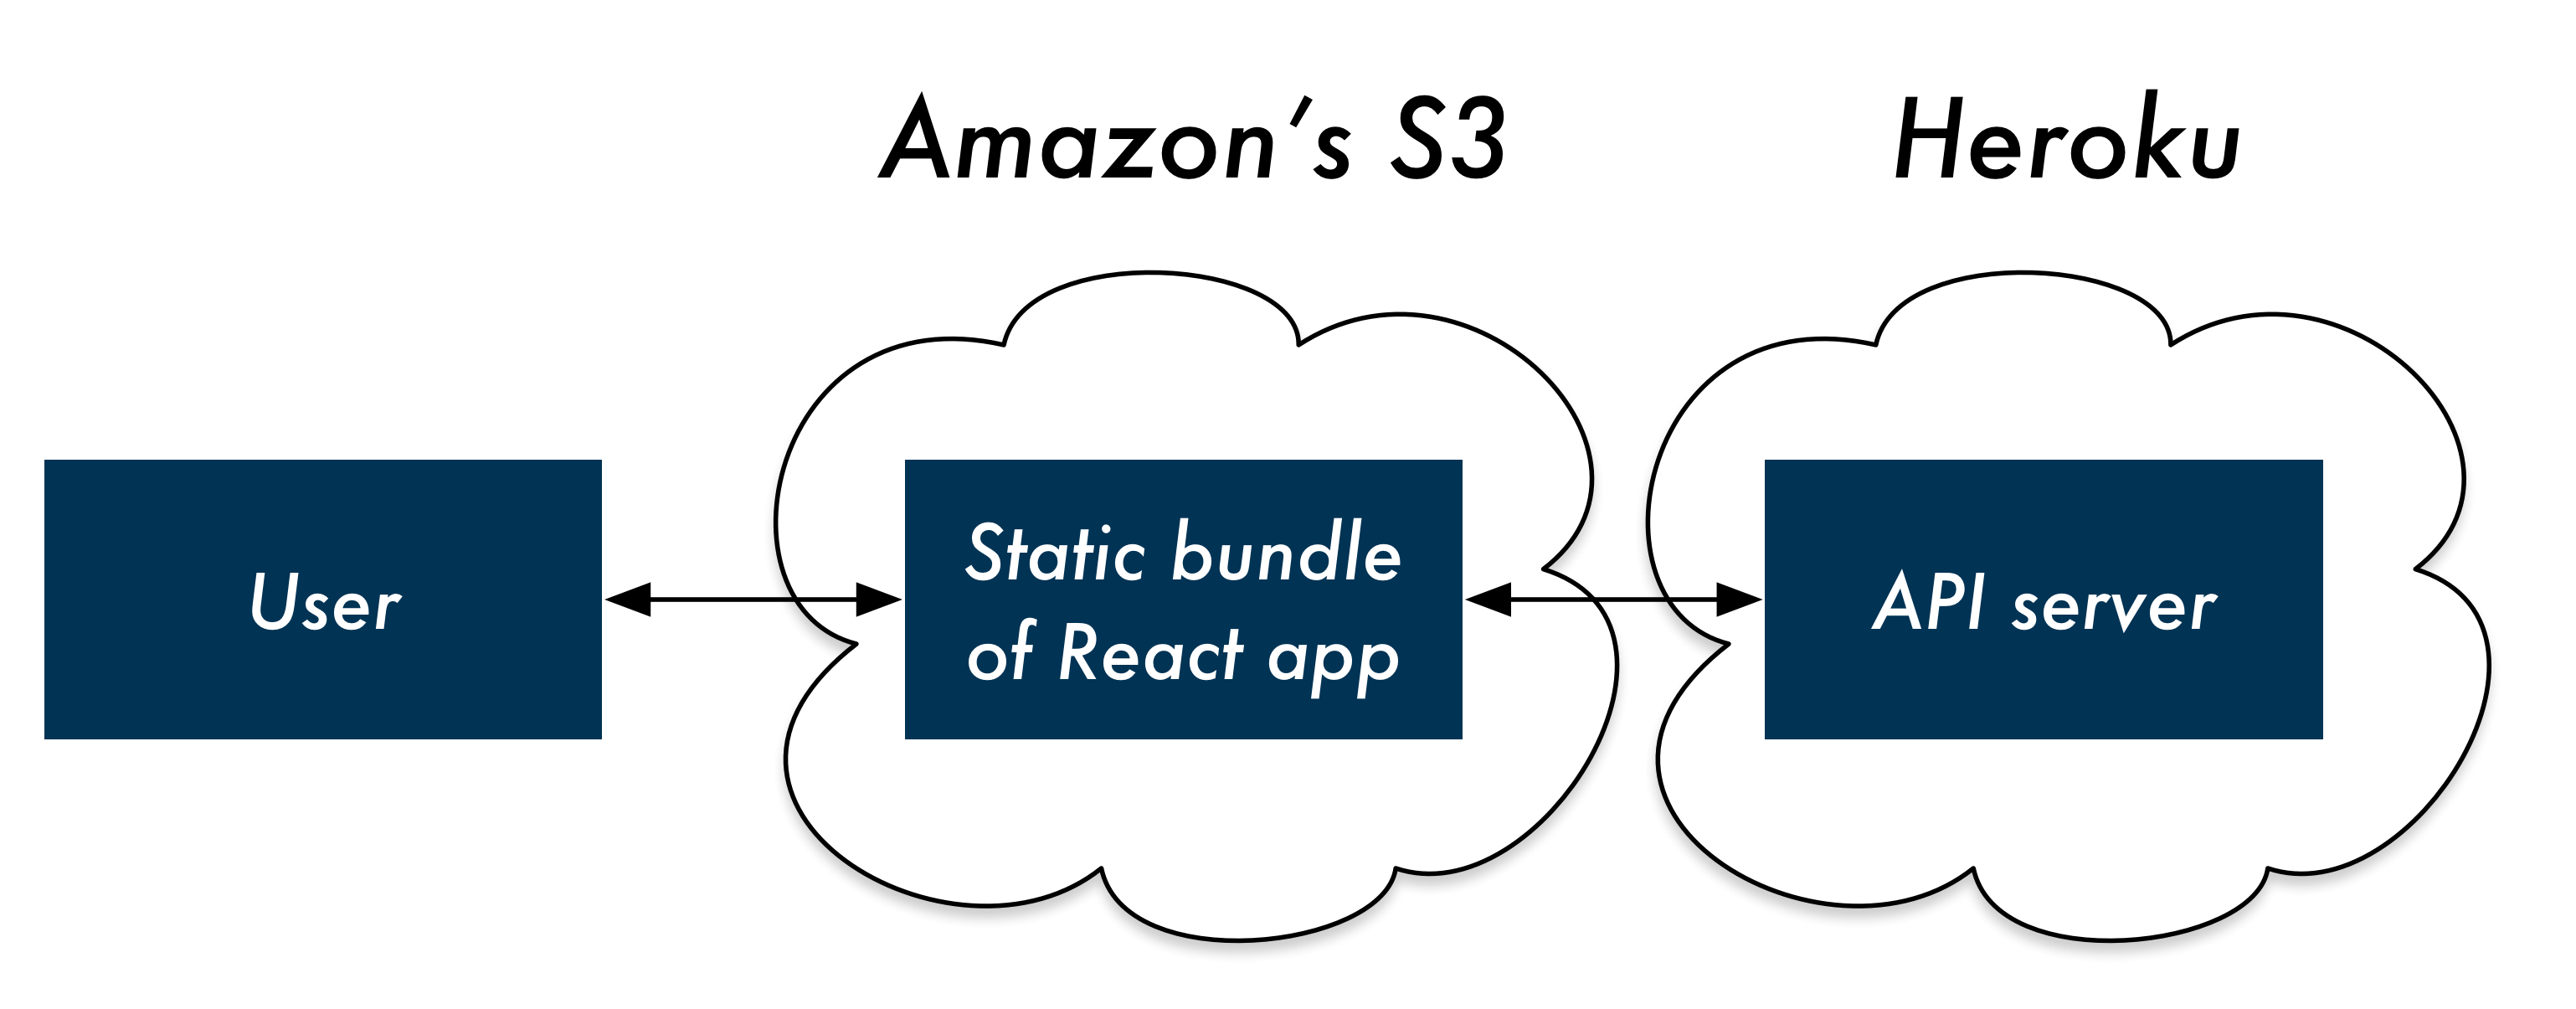 user's browser talks to React app on S3 which talks to API server on Heroku